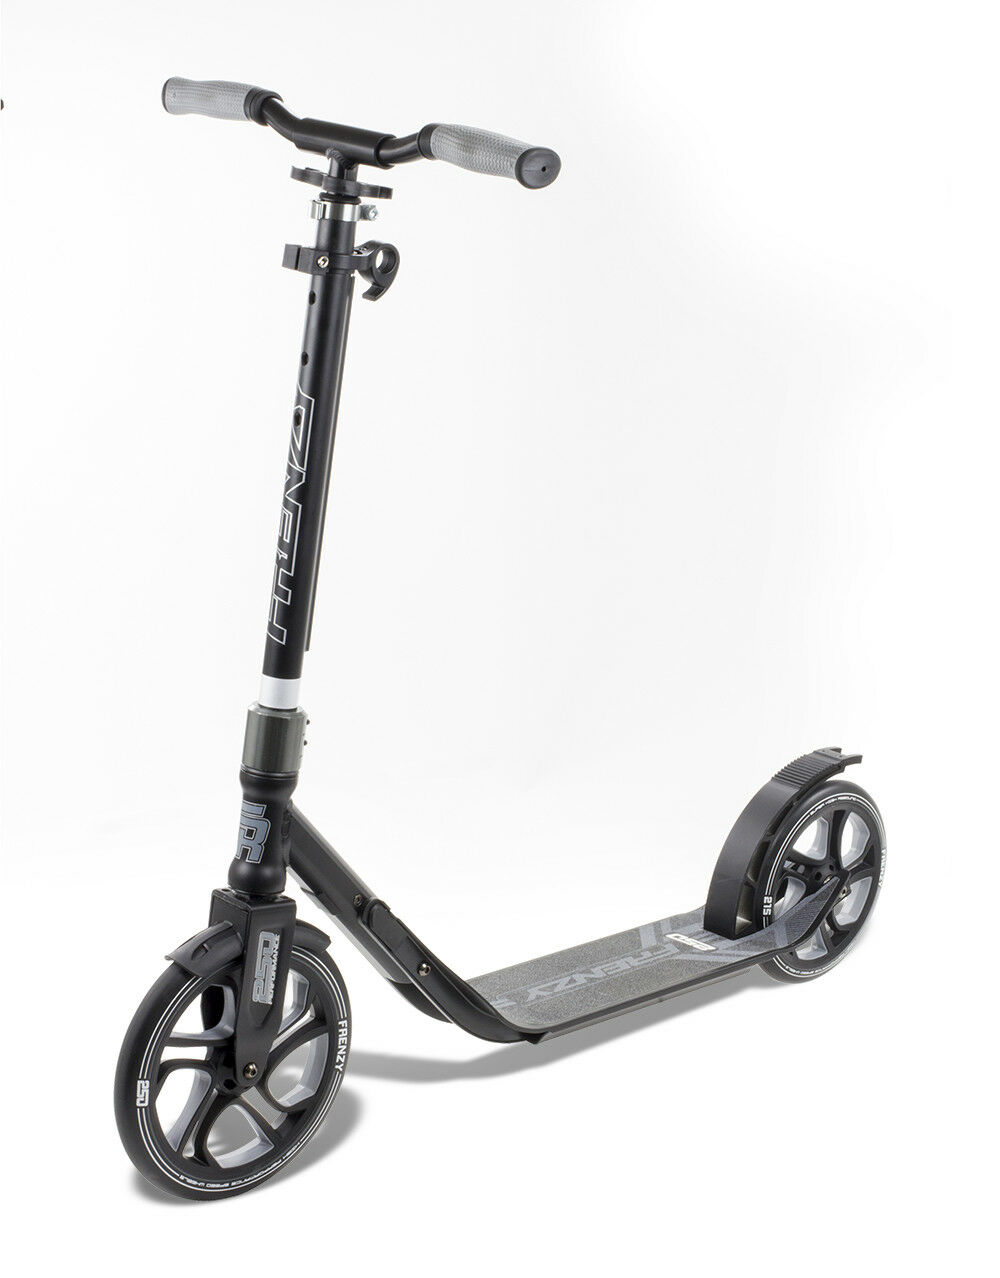 Frenzy-Recreativos-Negro - 250 mm Push Scooter Scooter